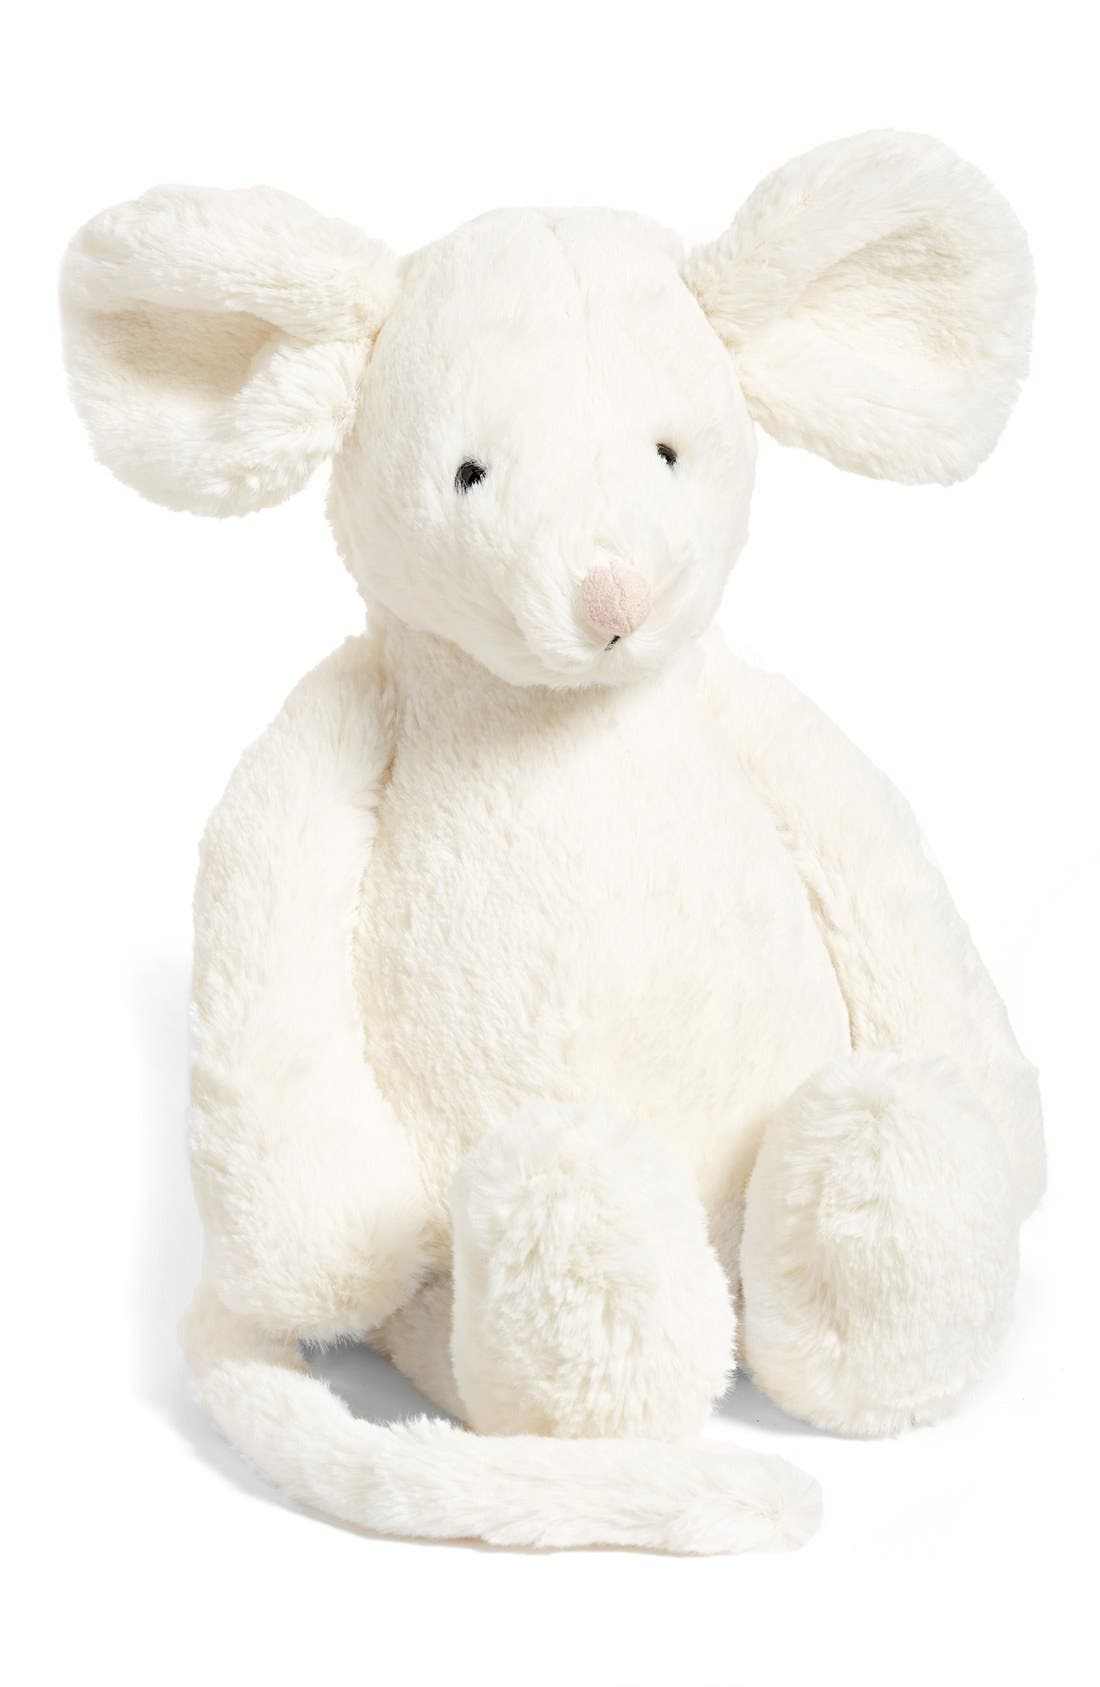 Alternate Image 1 Selected - Jellycat 'Medium Bashful Cream Mouse' Stuffed Animal